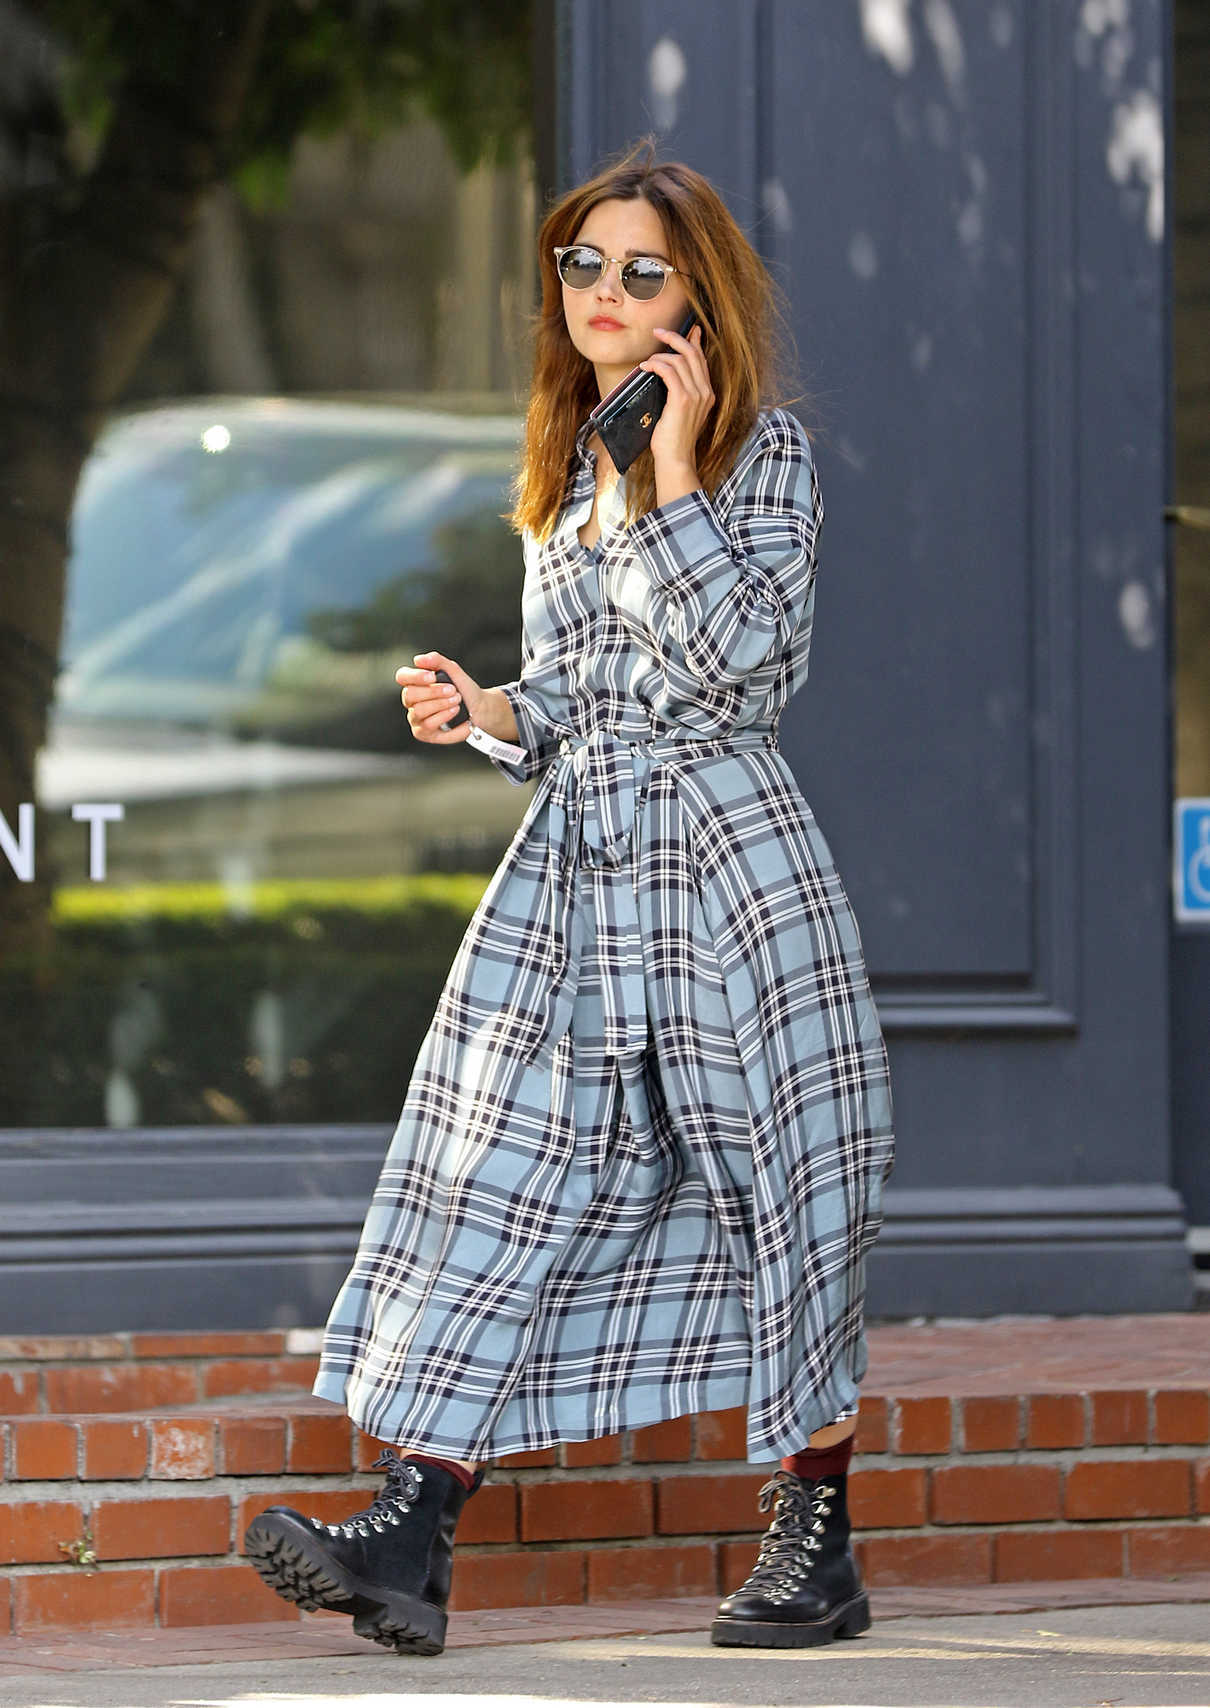 Jenna Coleman in a Gray Oversized Plaid Dress